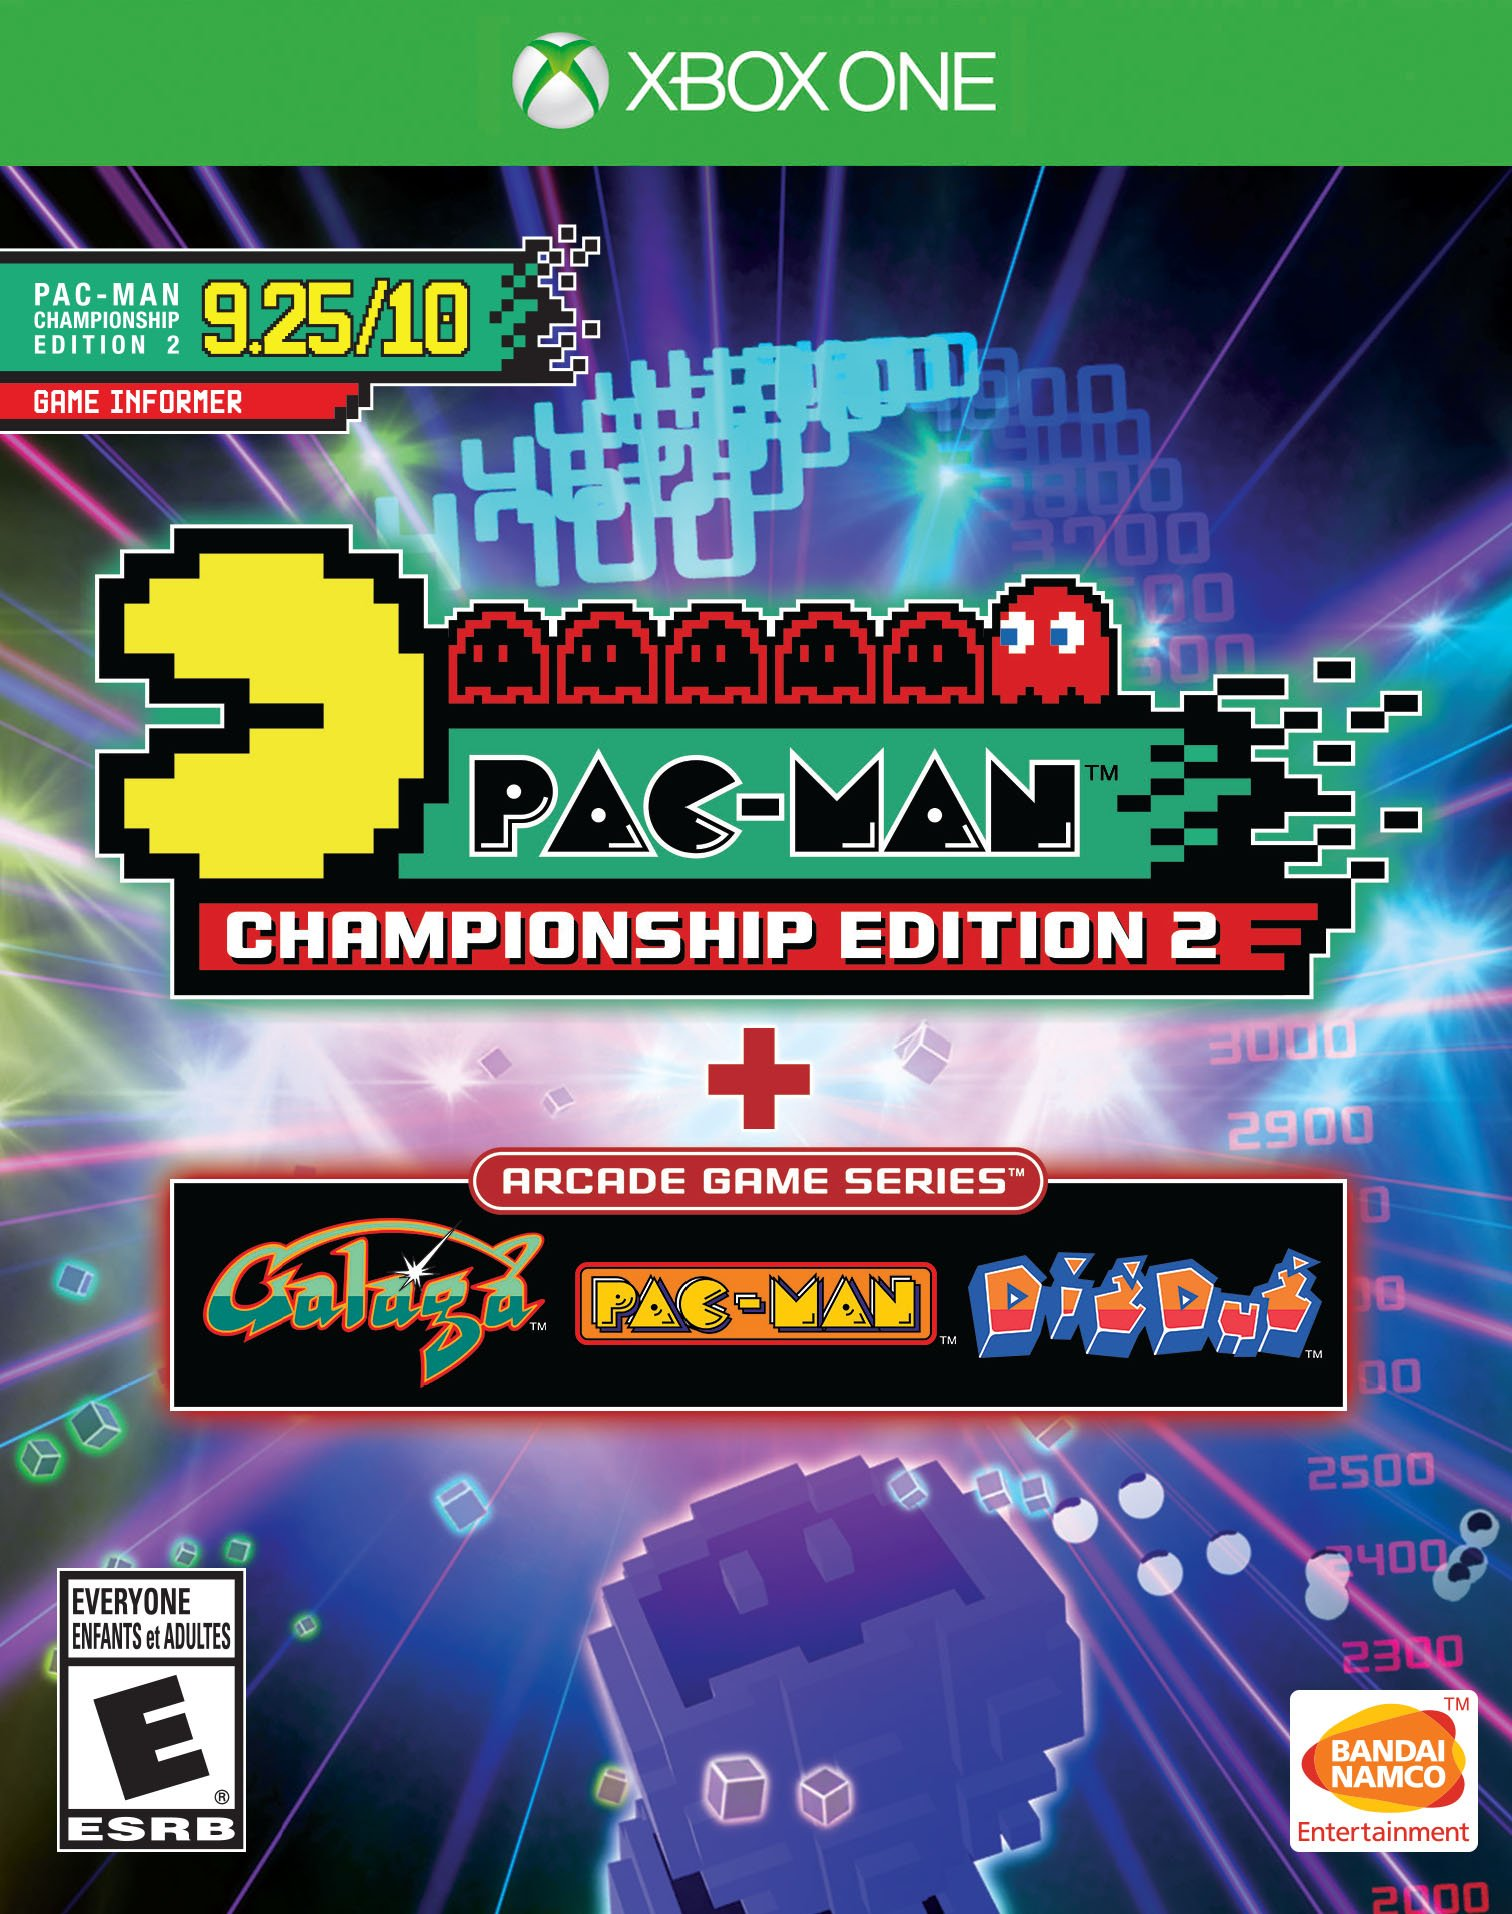 Ms. Pac-man (2016) xbox one box cover art mobygames.